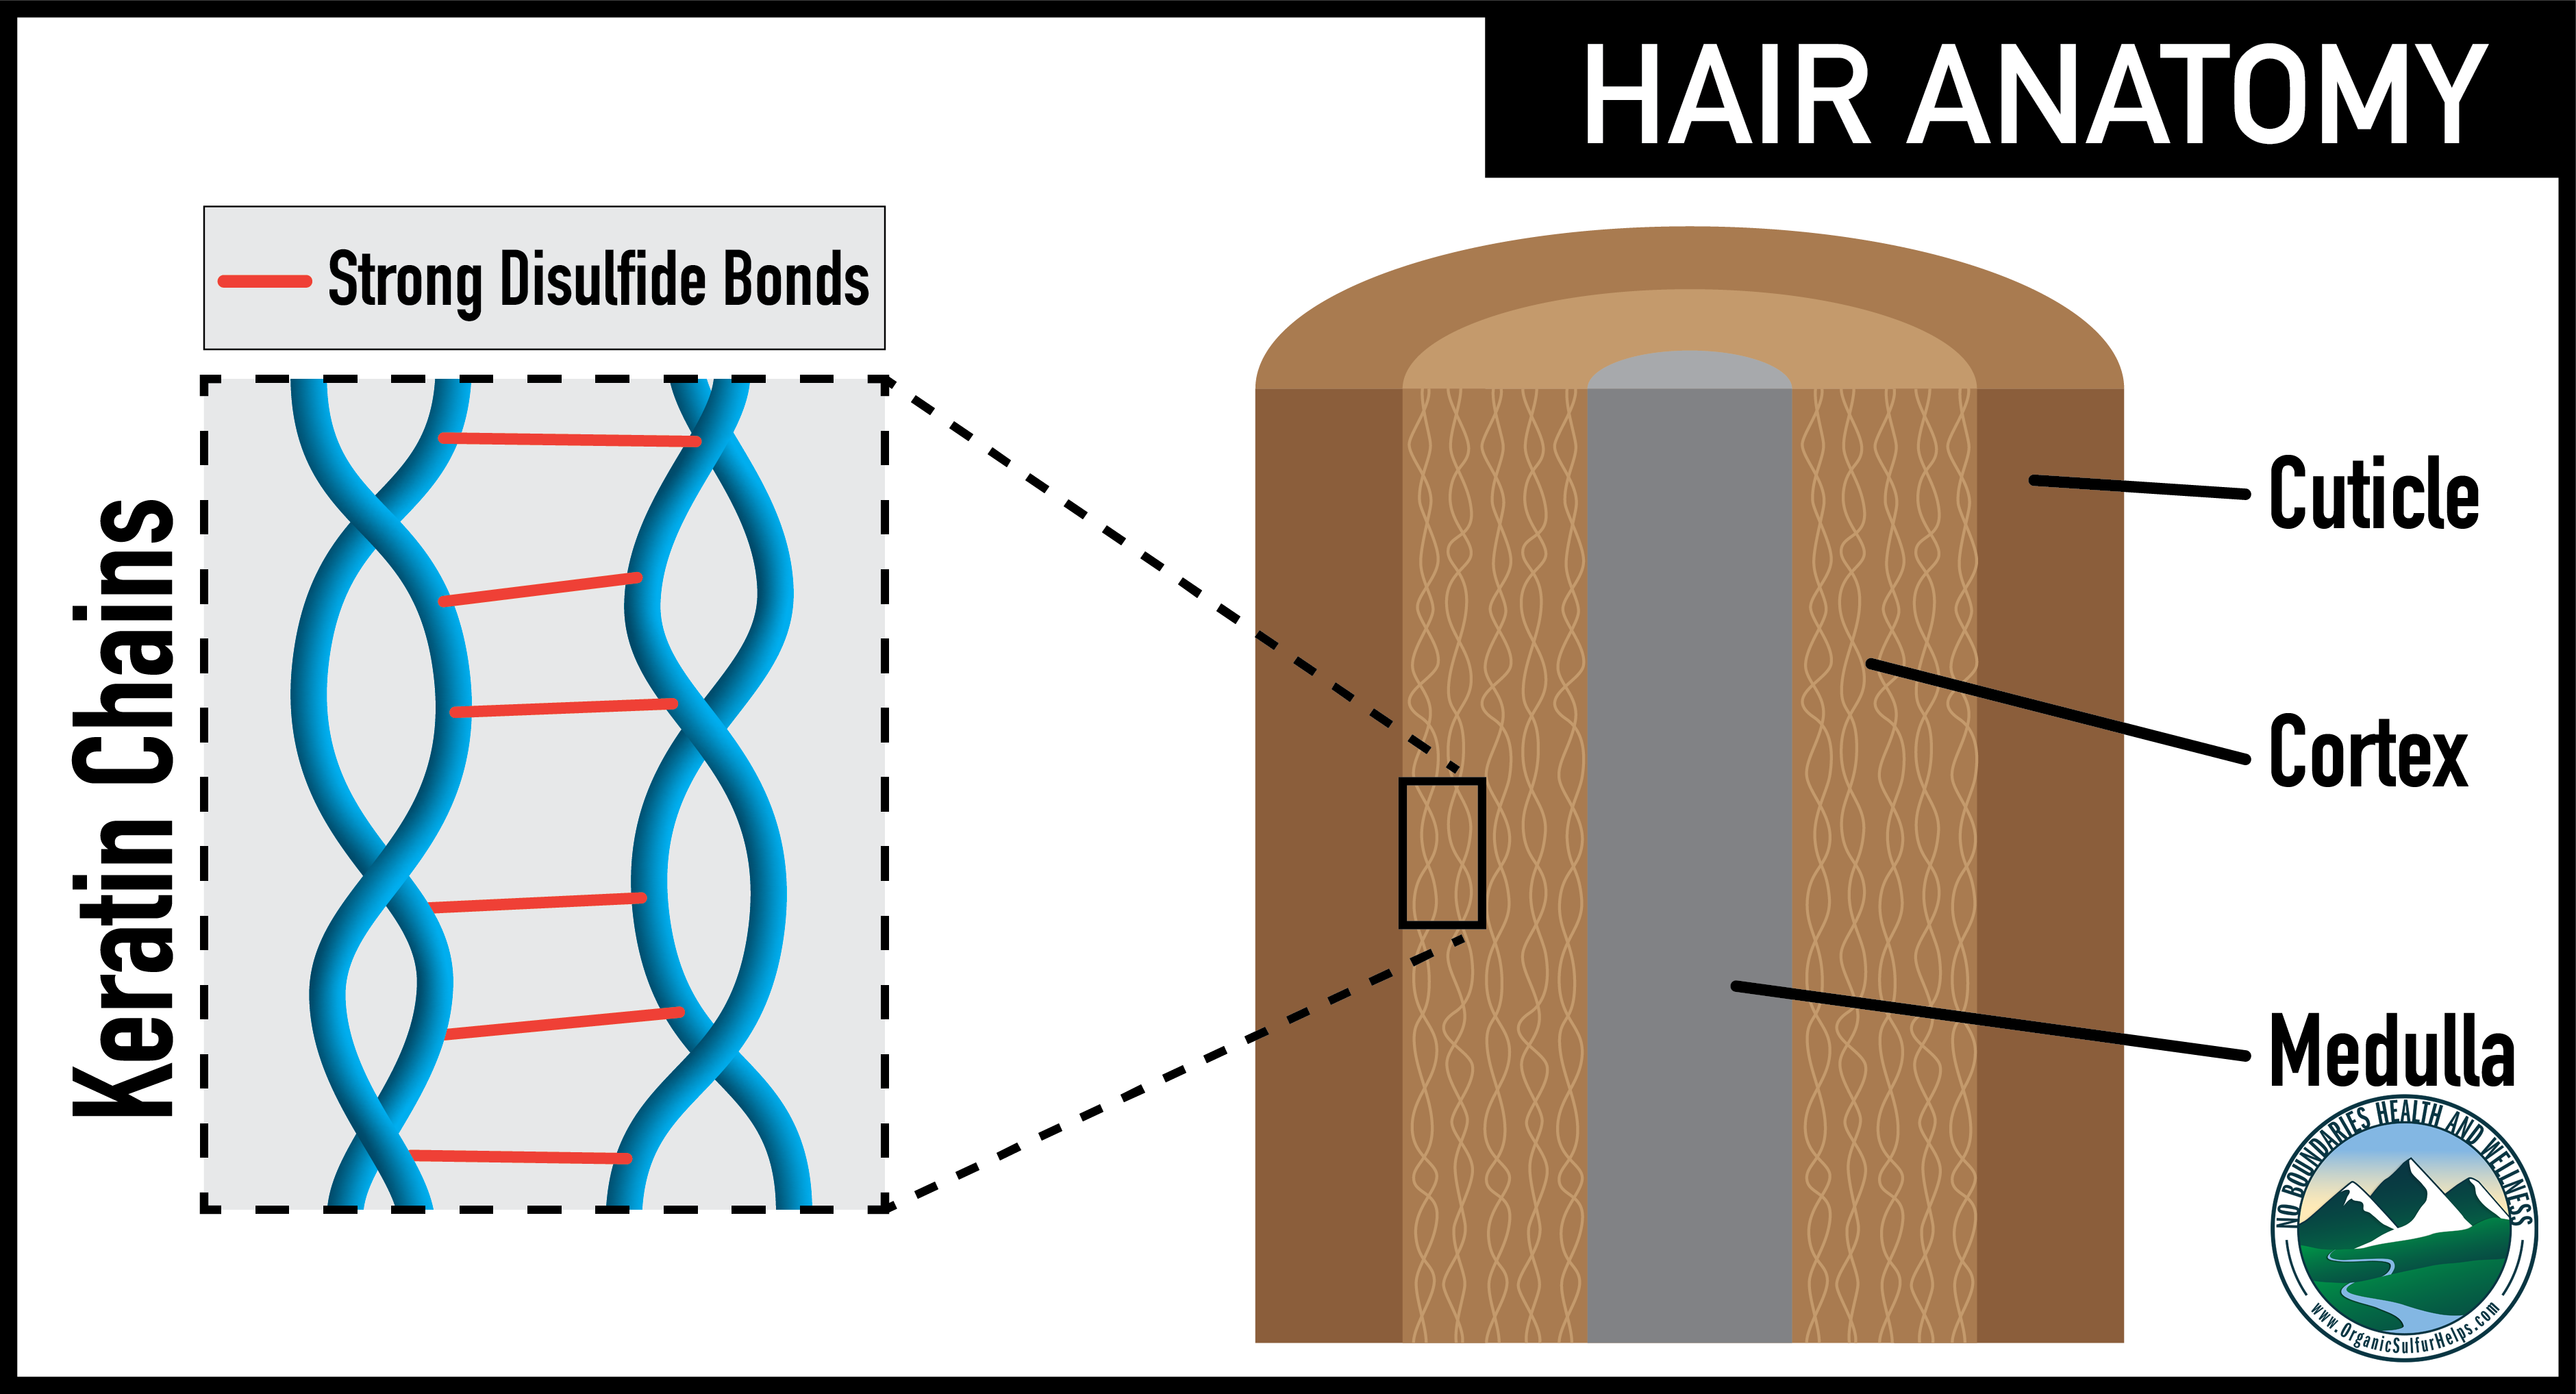 How sulfur helps hair anatomy